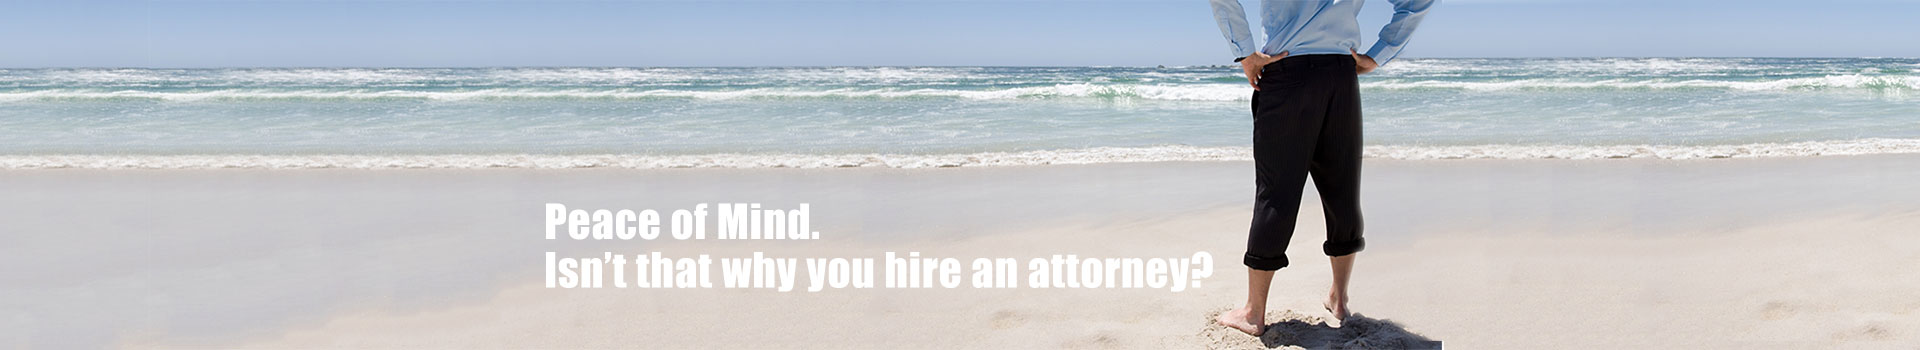 Attorney on beach, Gary L. Davis, Pasco County Attorney